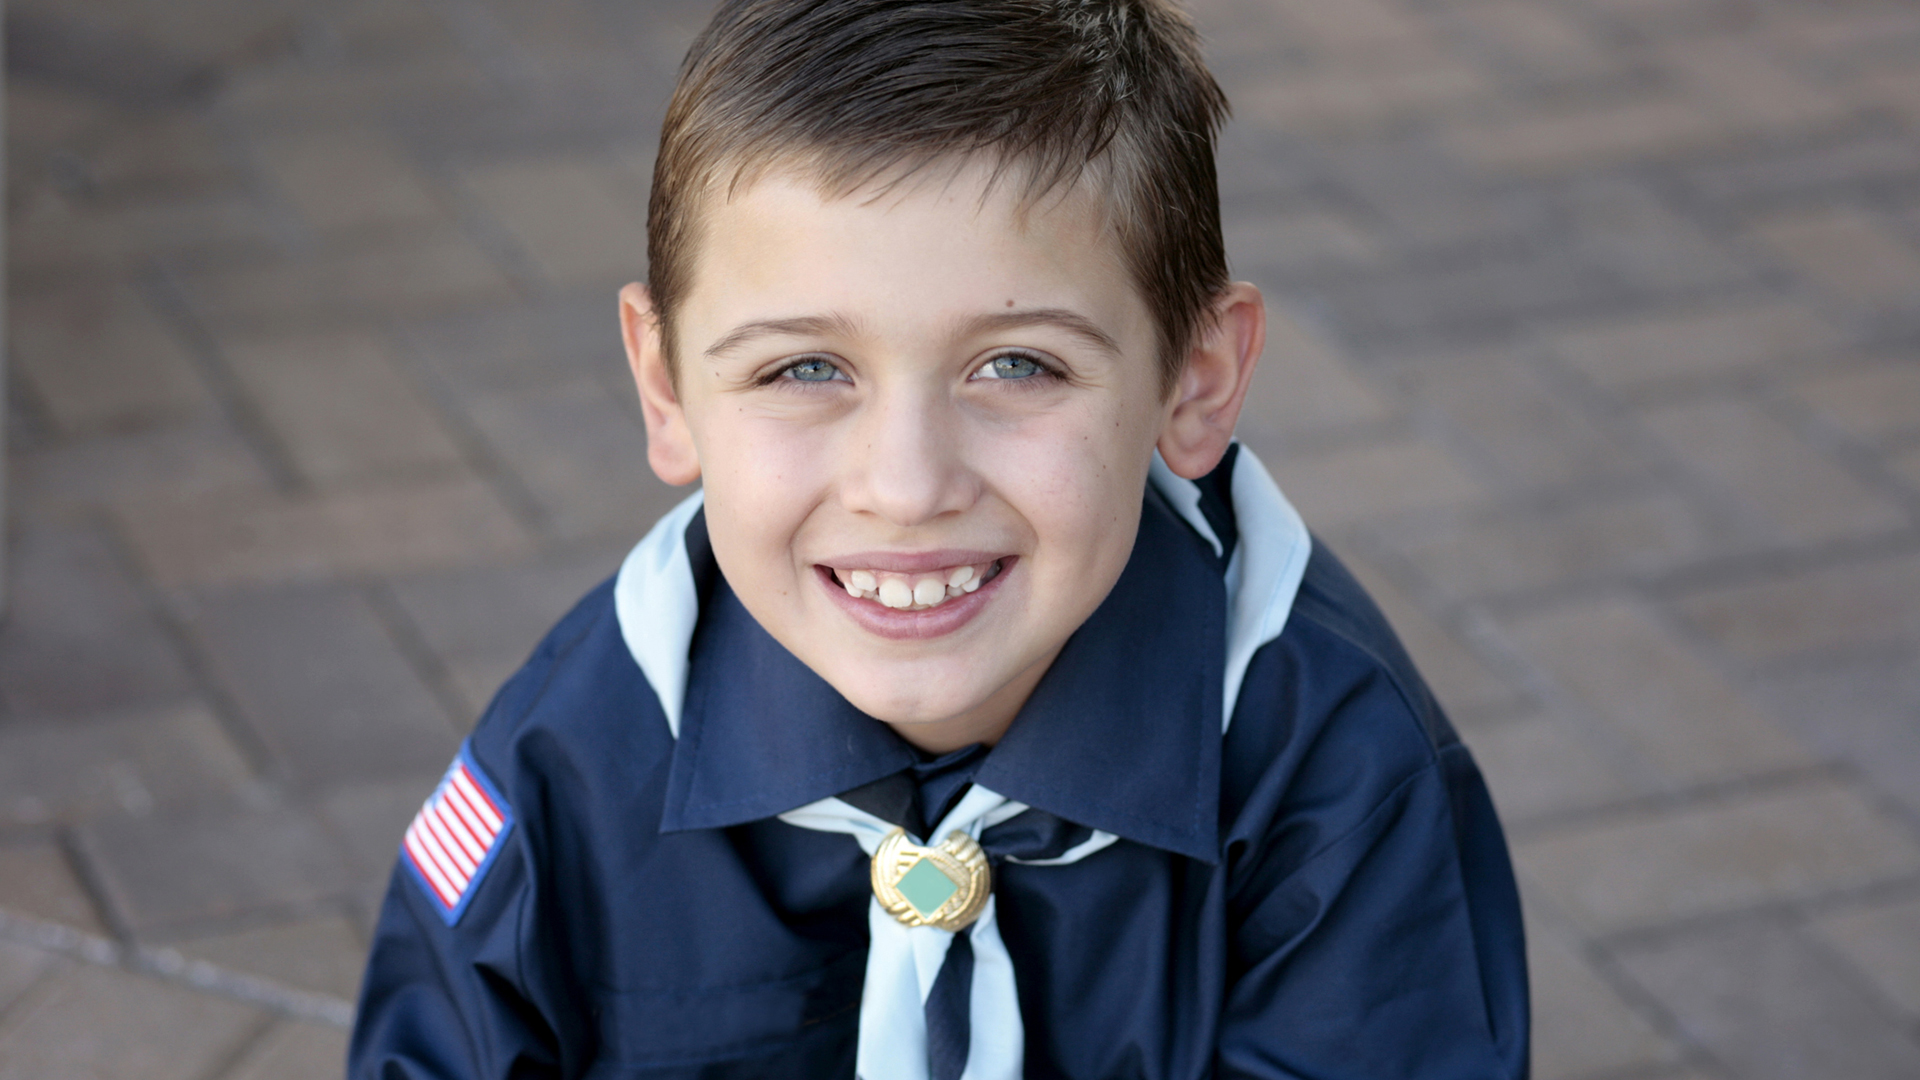 Young boy scout | Sheknows.com